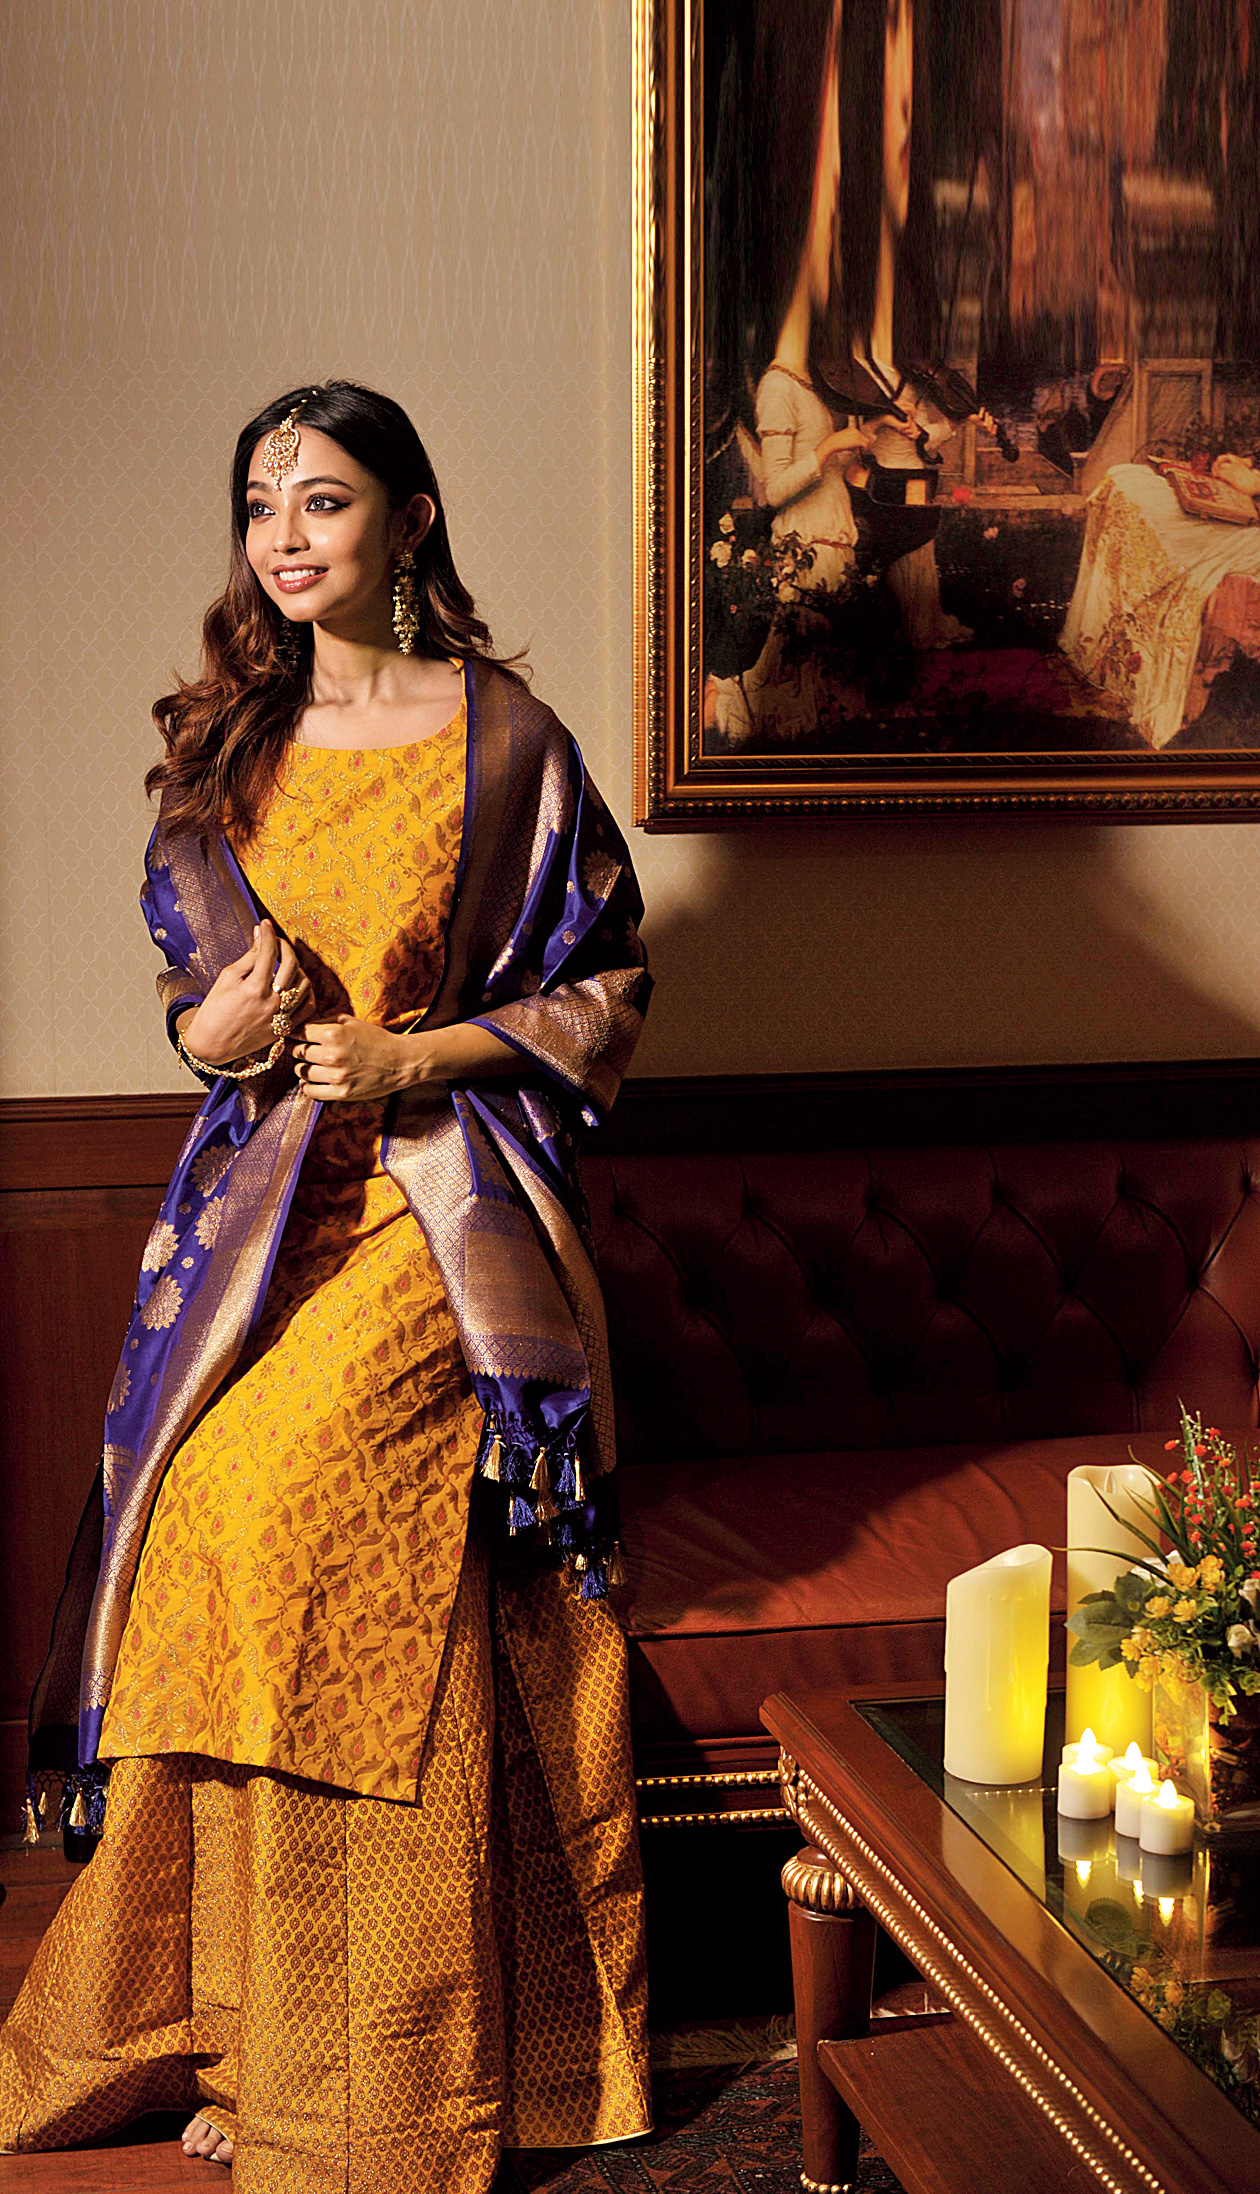 Ms Sunshine: A happy hue of marigold yellow is bound to put you in a cheery mood as you dress up for the day. The brocade kurta with jaal work has been paired with a skirt with meena bootis and a dupatta with floral patterns in a contrasting hue. Ditch the dupatta if you want to tone it down